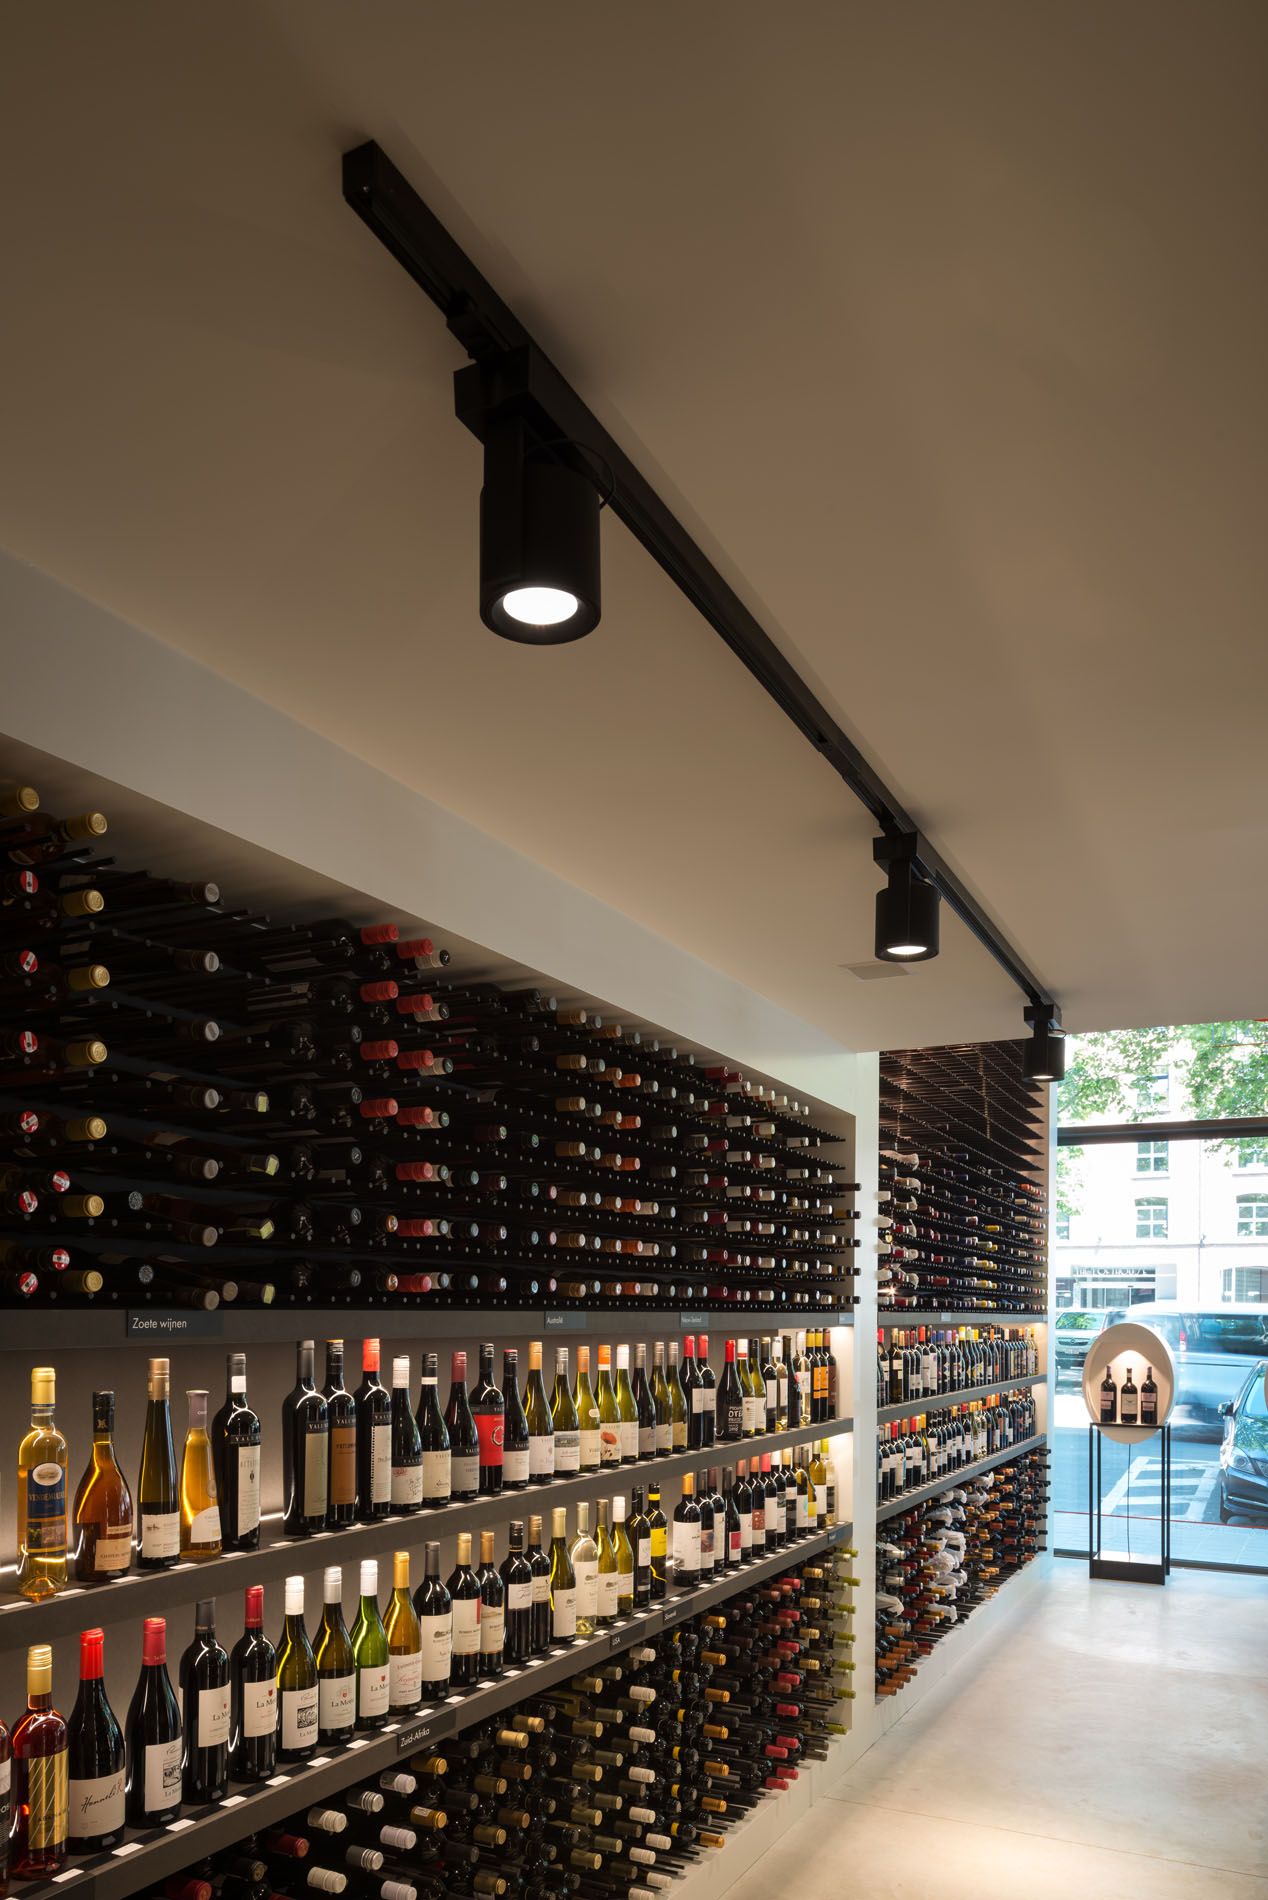 Chacalli Wines, Antwerpen (BE) image 7